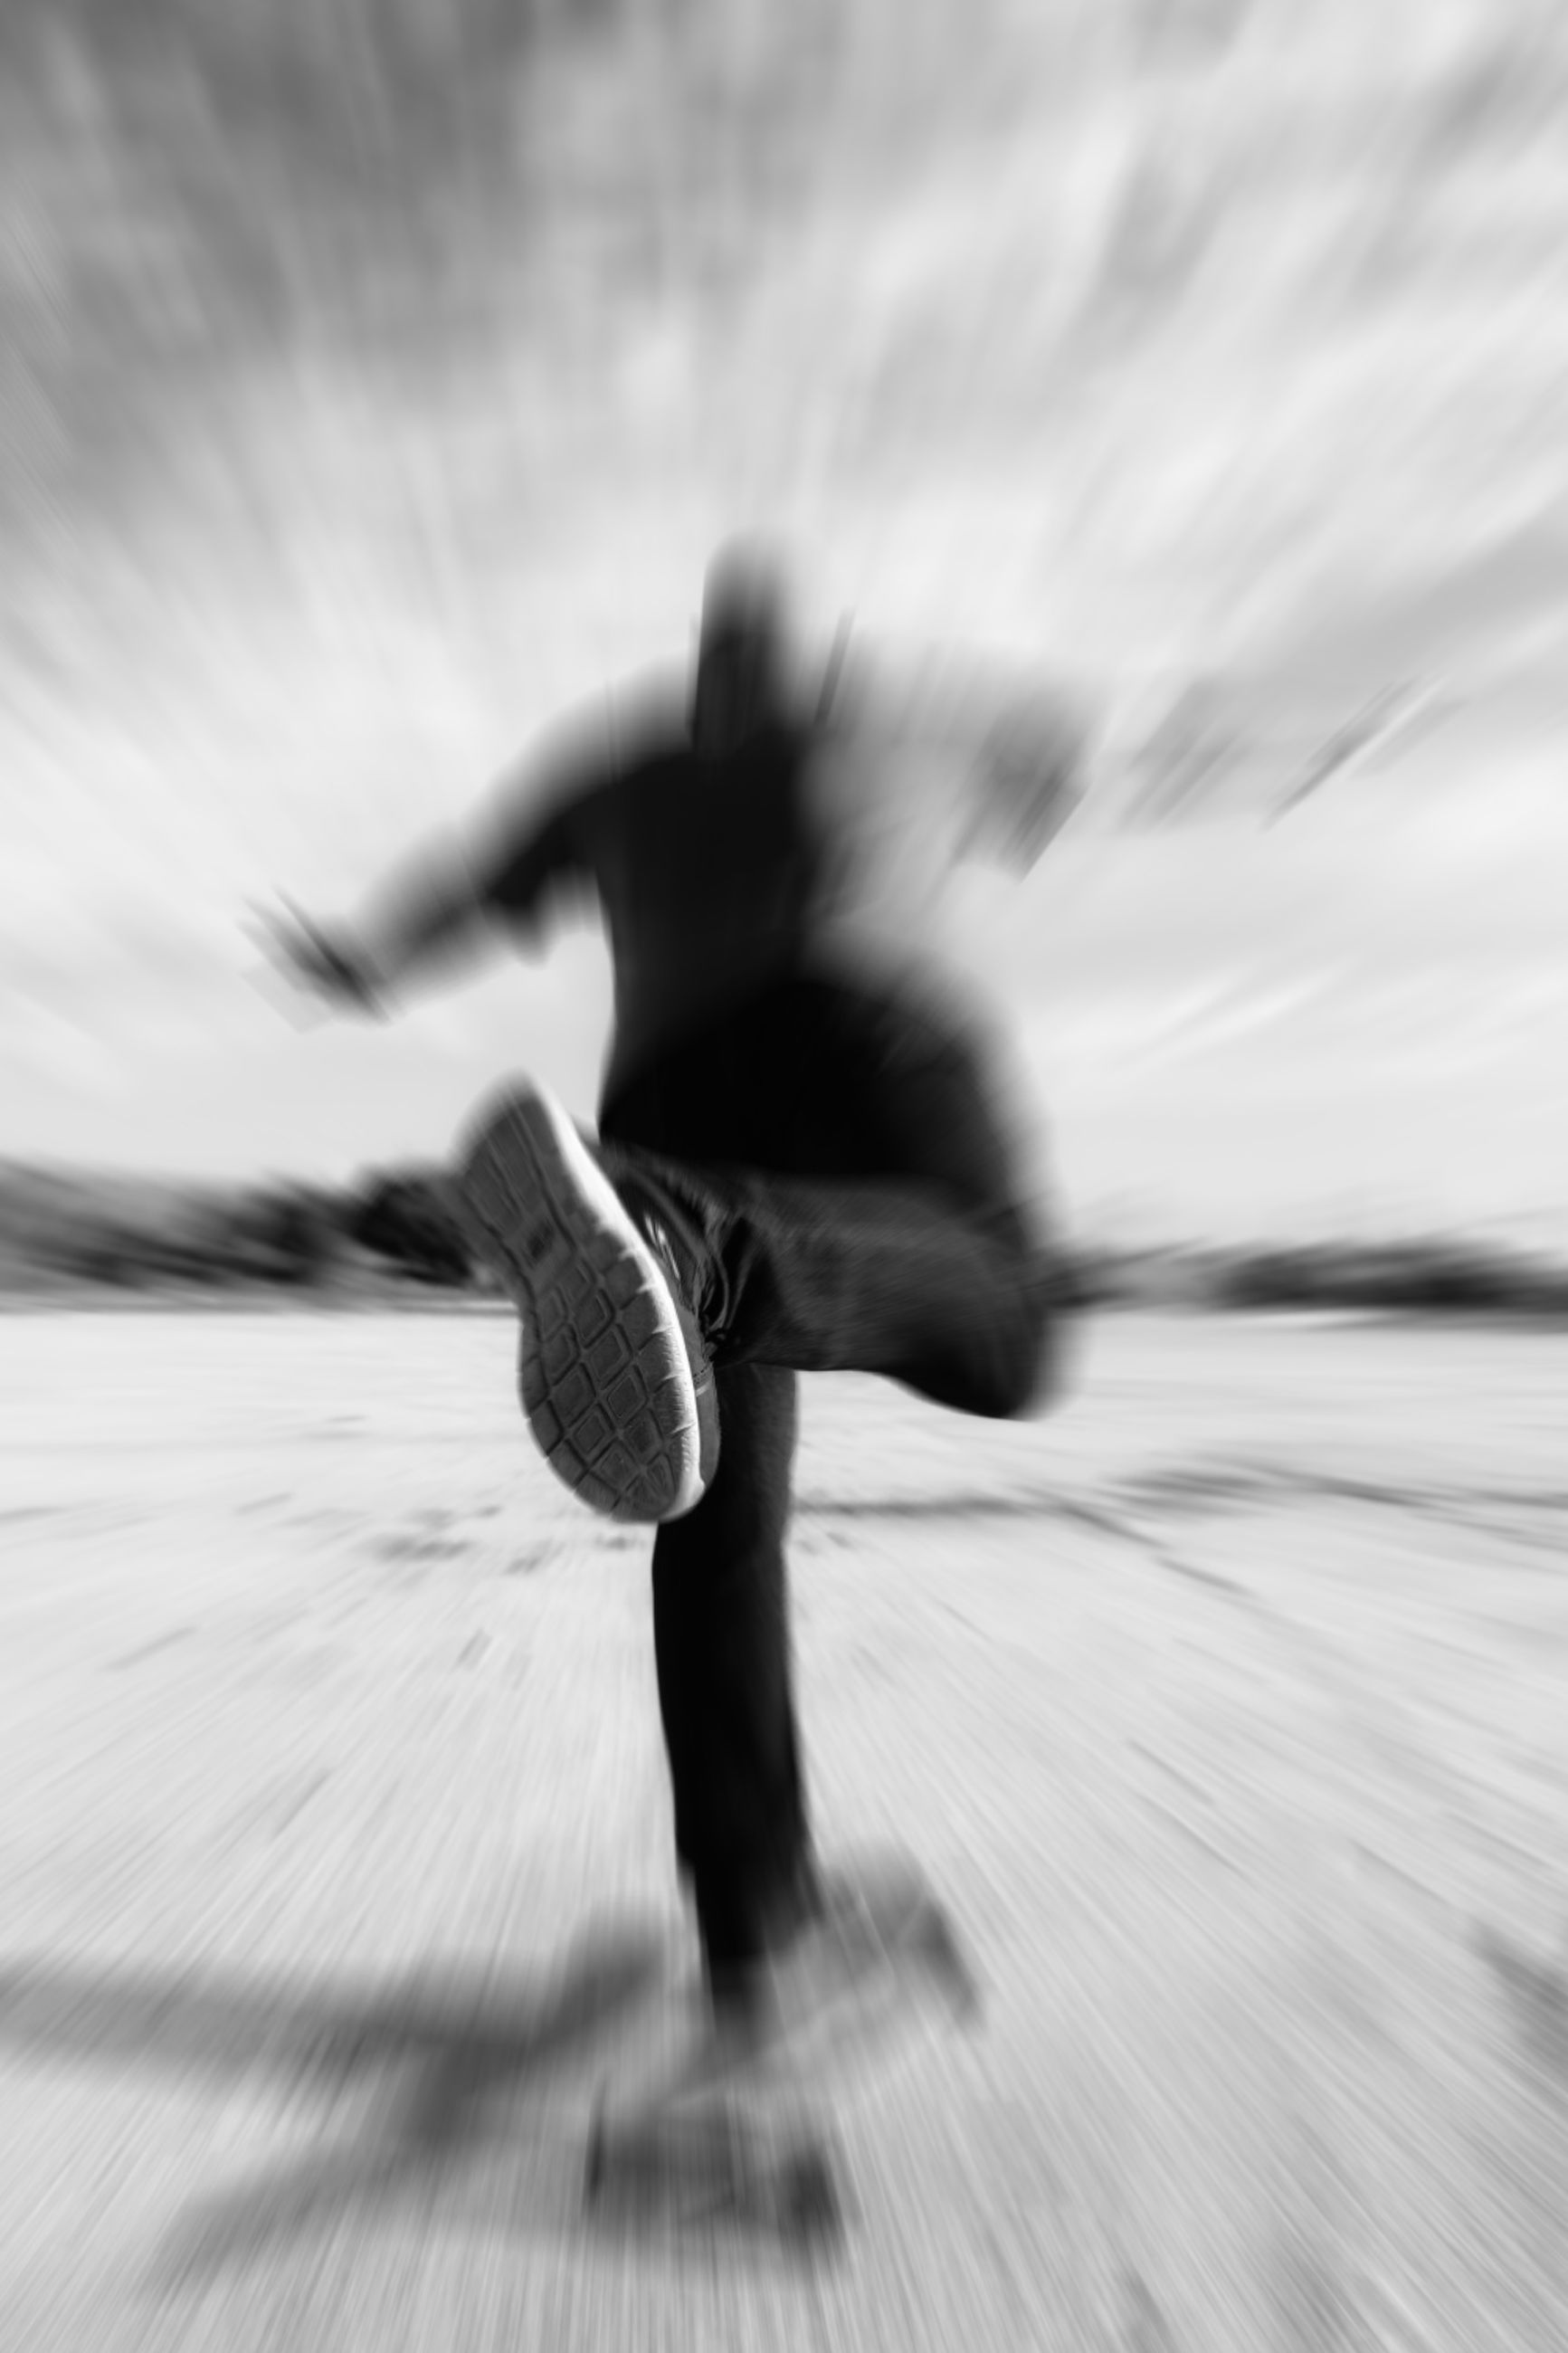 blurred motion, motion, real people, one person, lifestyles, selective focus, leisure activity, day, nature, defocused, dancing, speed, outdoors, low section, side view, unrecognizable person, sky, skill, running